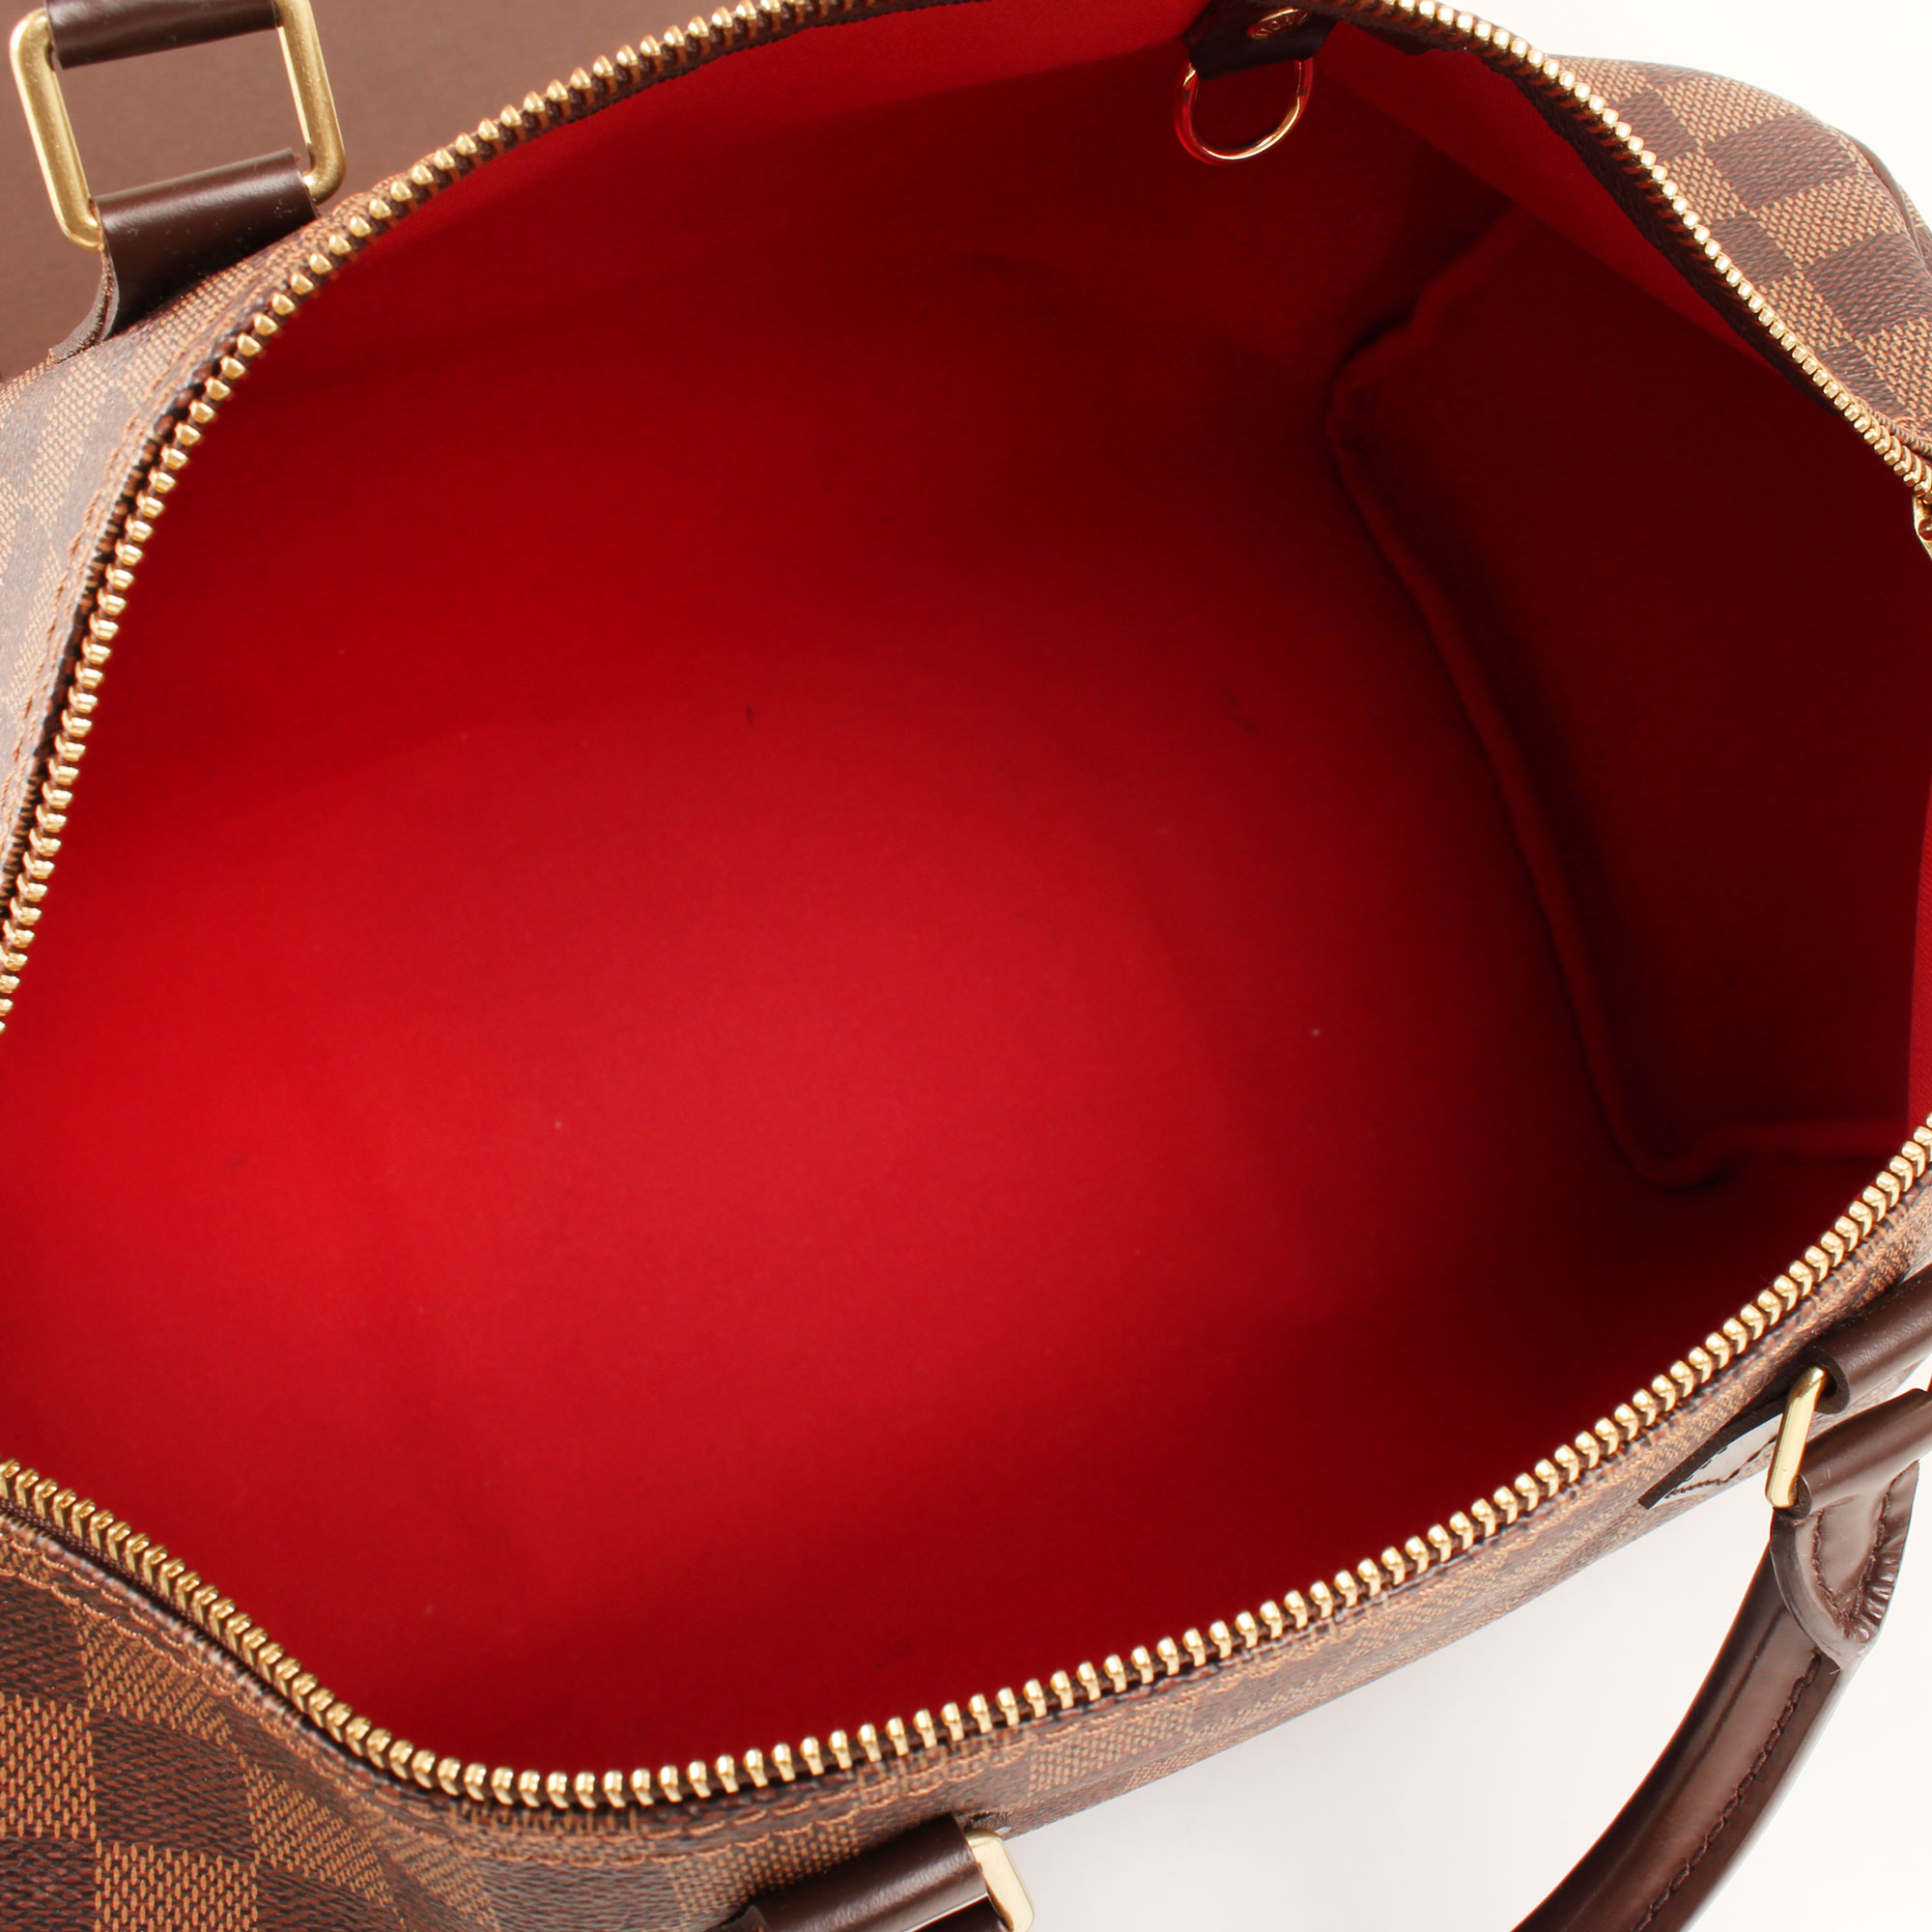 bag-louis-vuitton-speedy-35-damier-ebene-lining